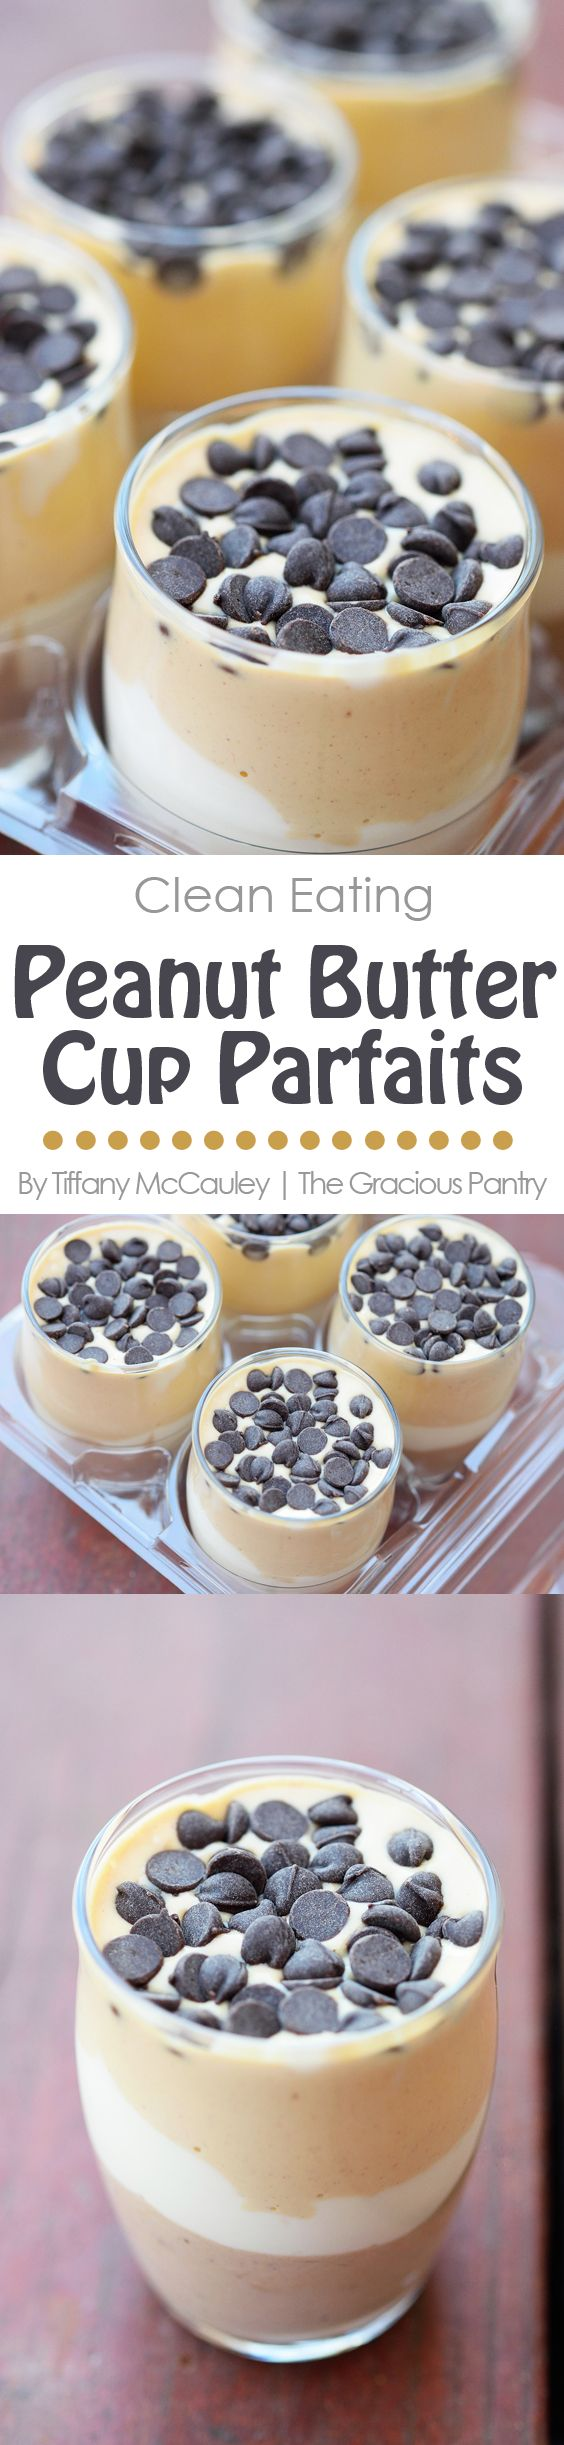 Clean Eating Recipes | Peanut Butter Cup Parfaits | Healthy Parfaits | Dessert Recipes ~ https://www.thegraciouspantry.com